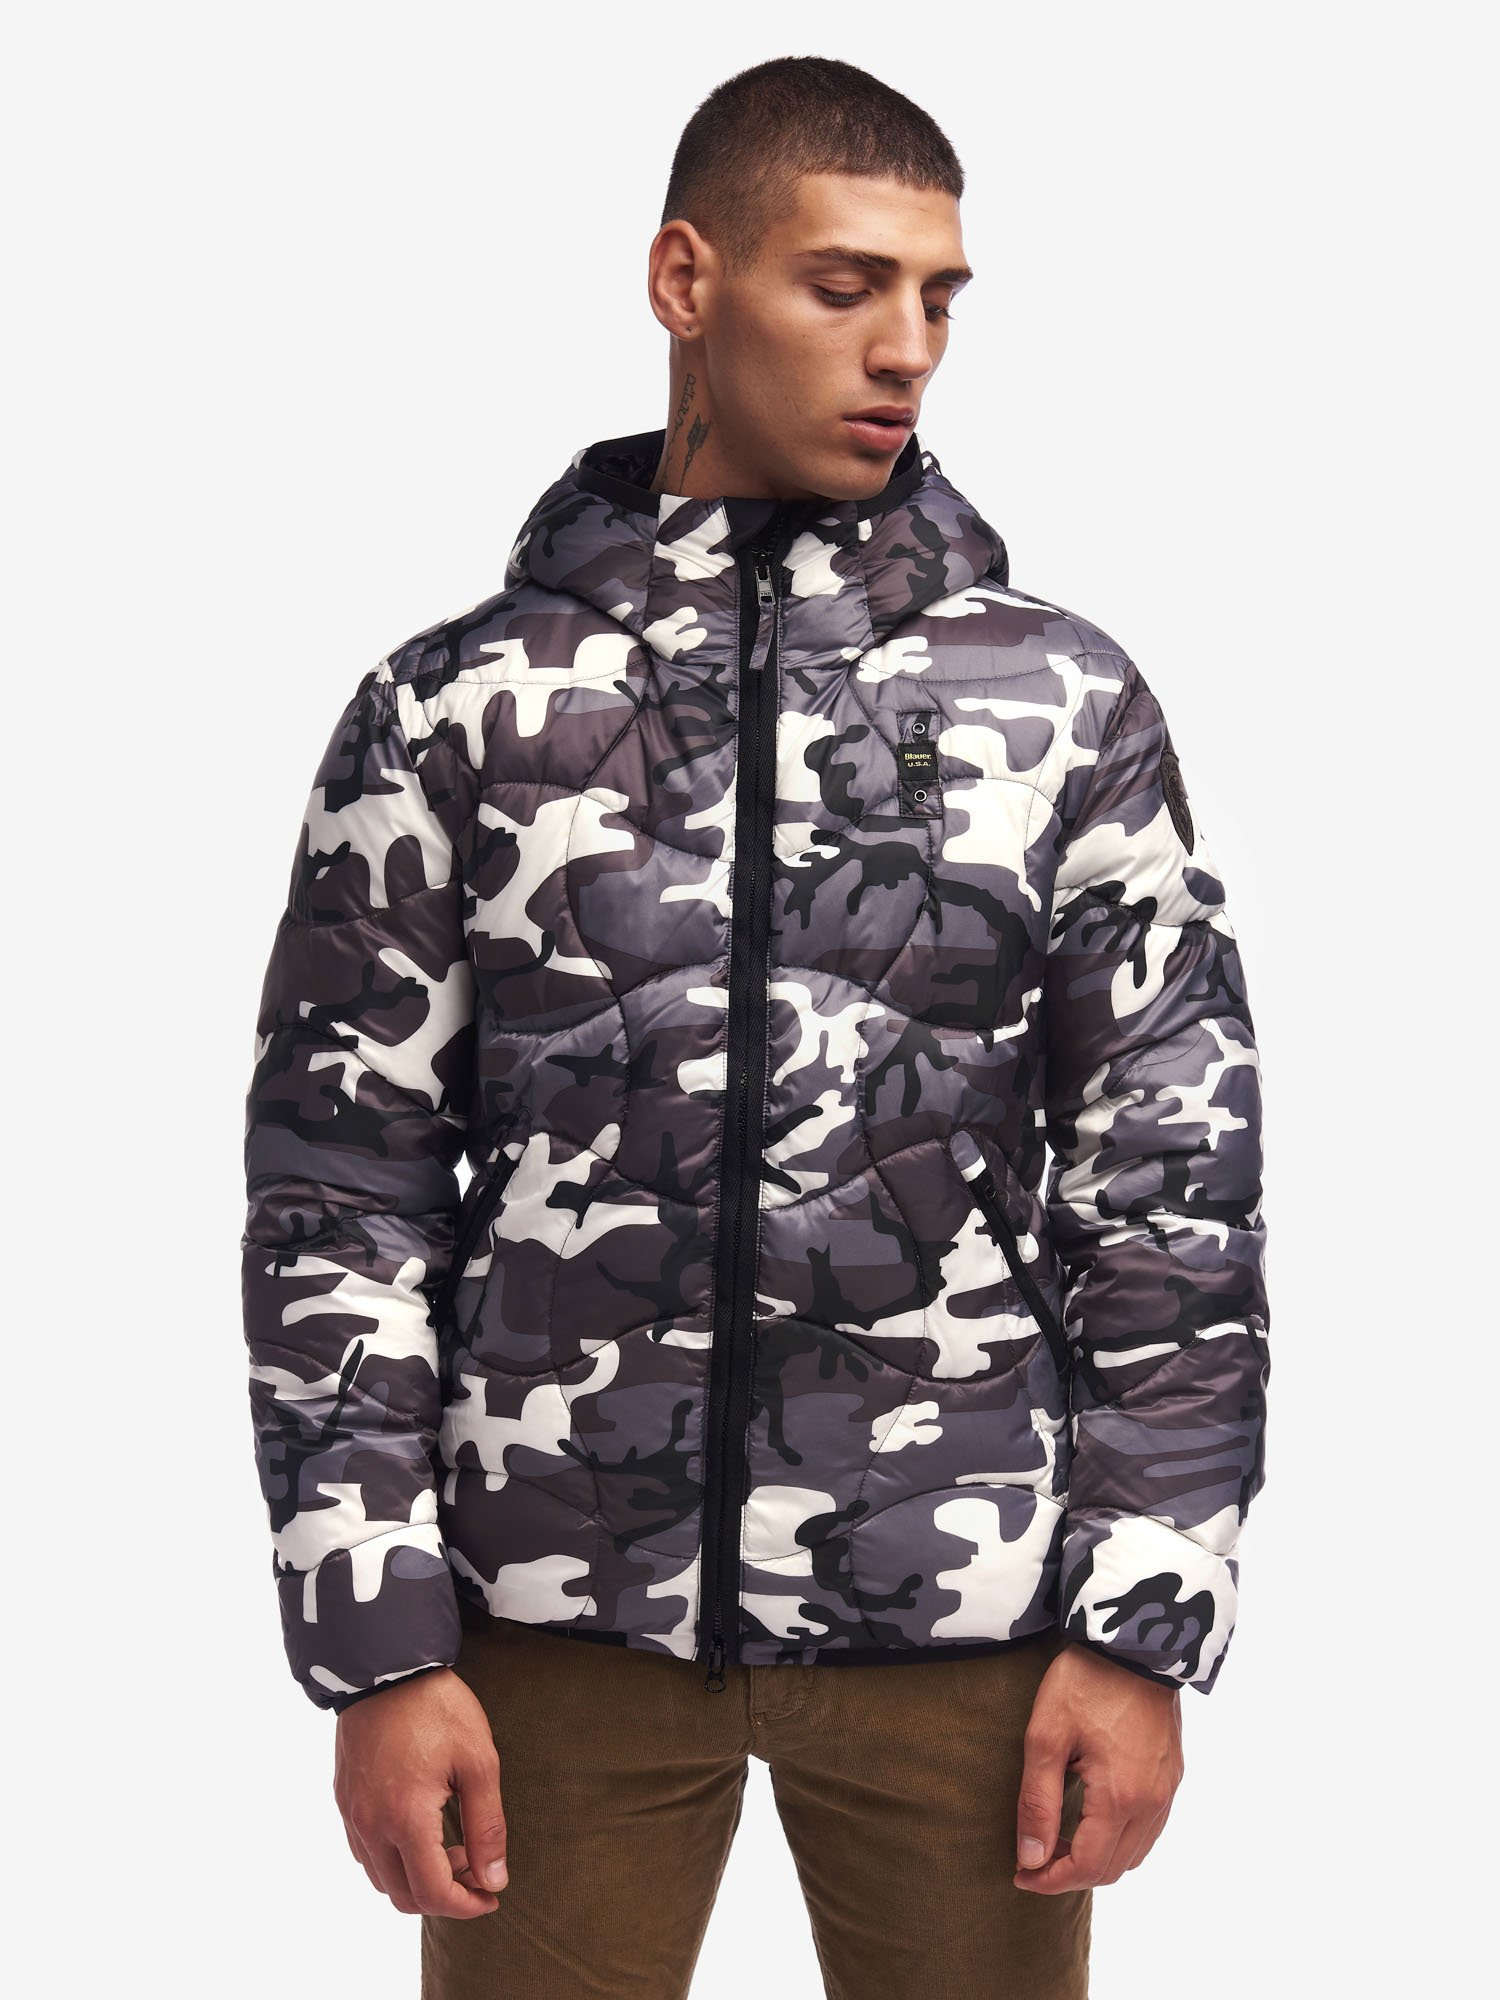 ARMSTRONG CAMOUFLAGE DOWN JACKET - Blauer